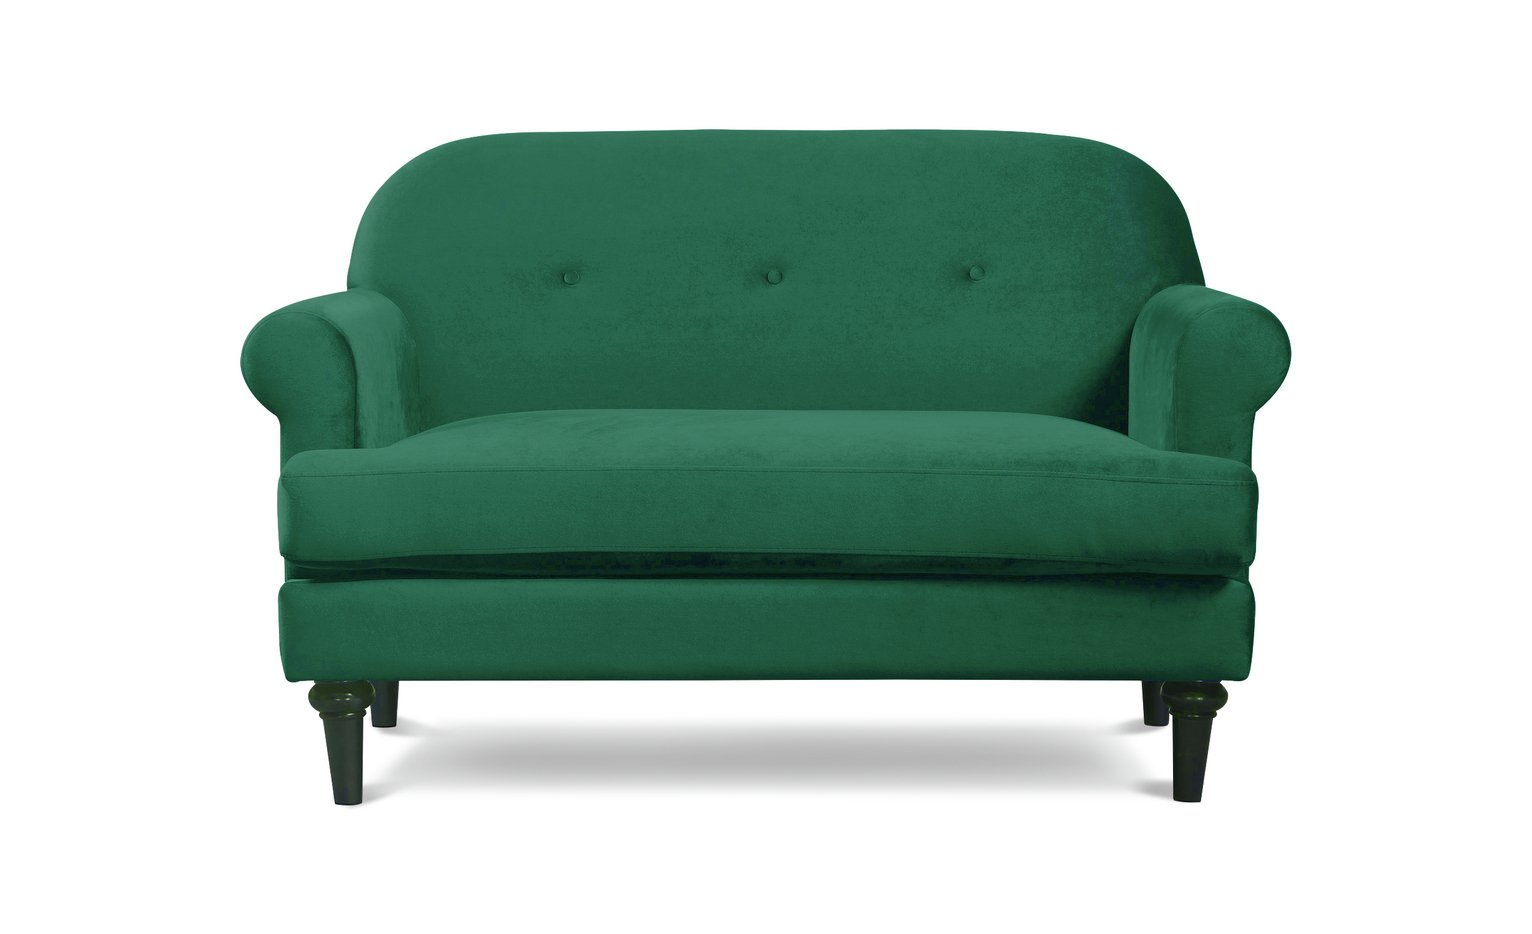 ec5c4154f71c Save 15% when you spend over £150 on selected sofas | Argos Price ...